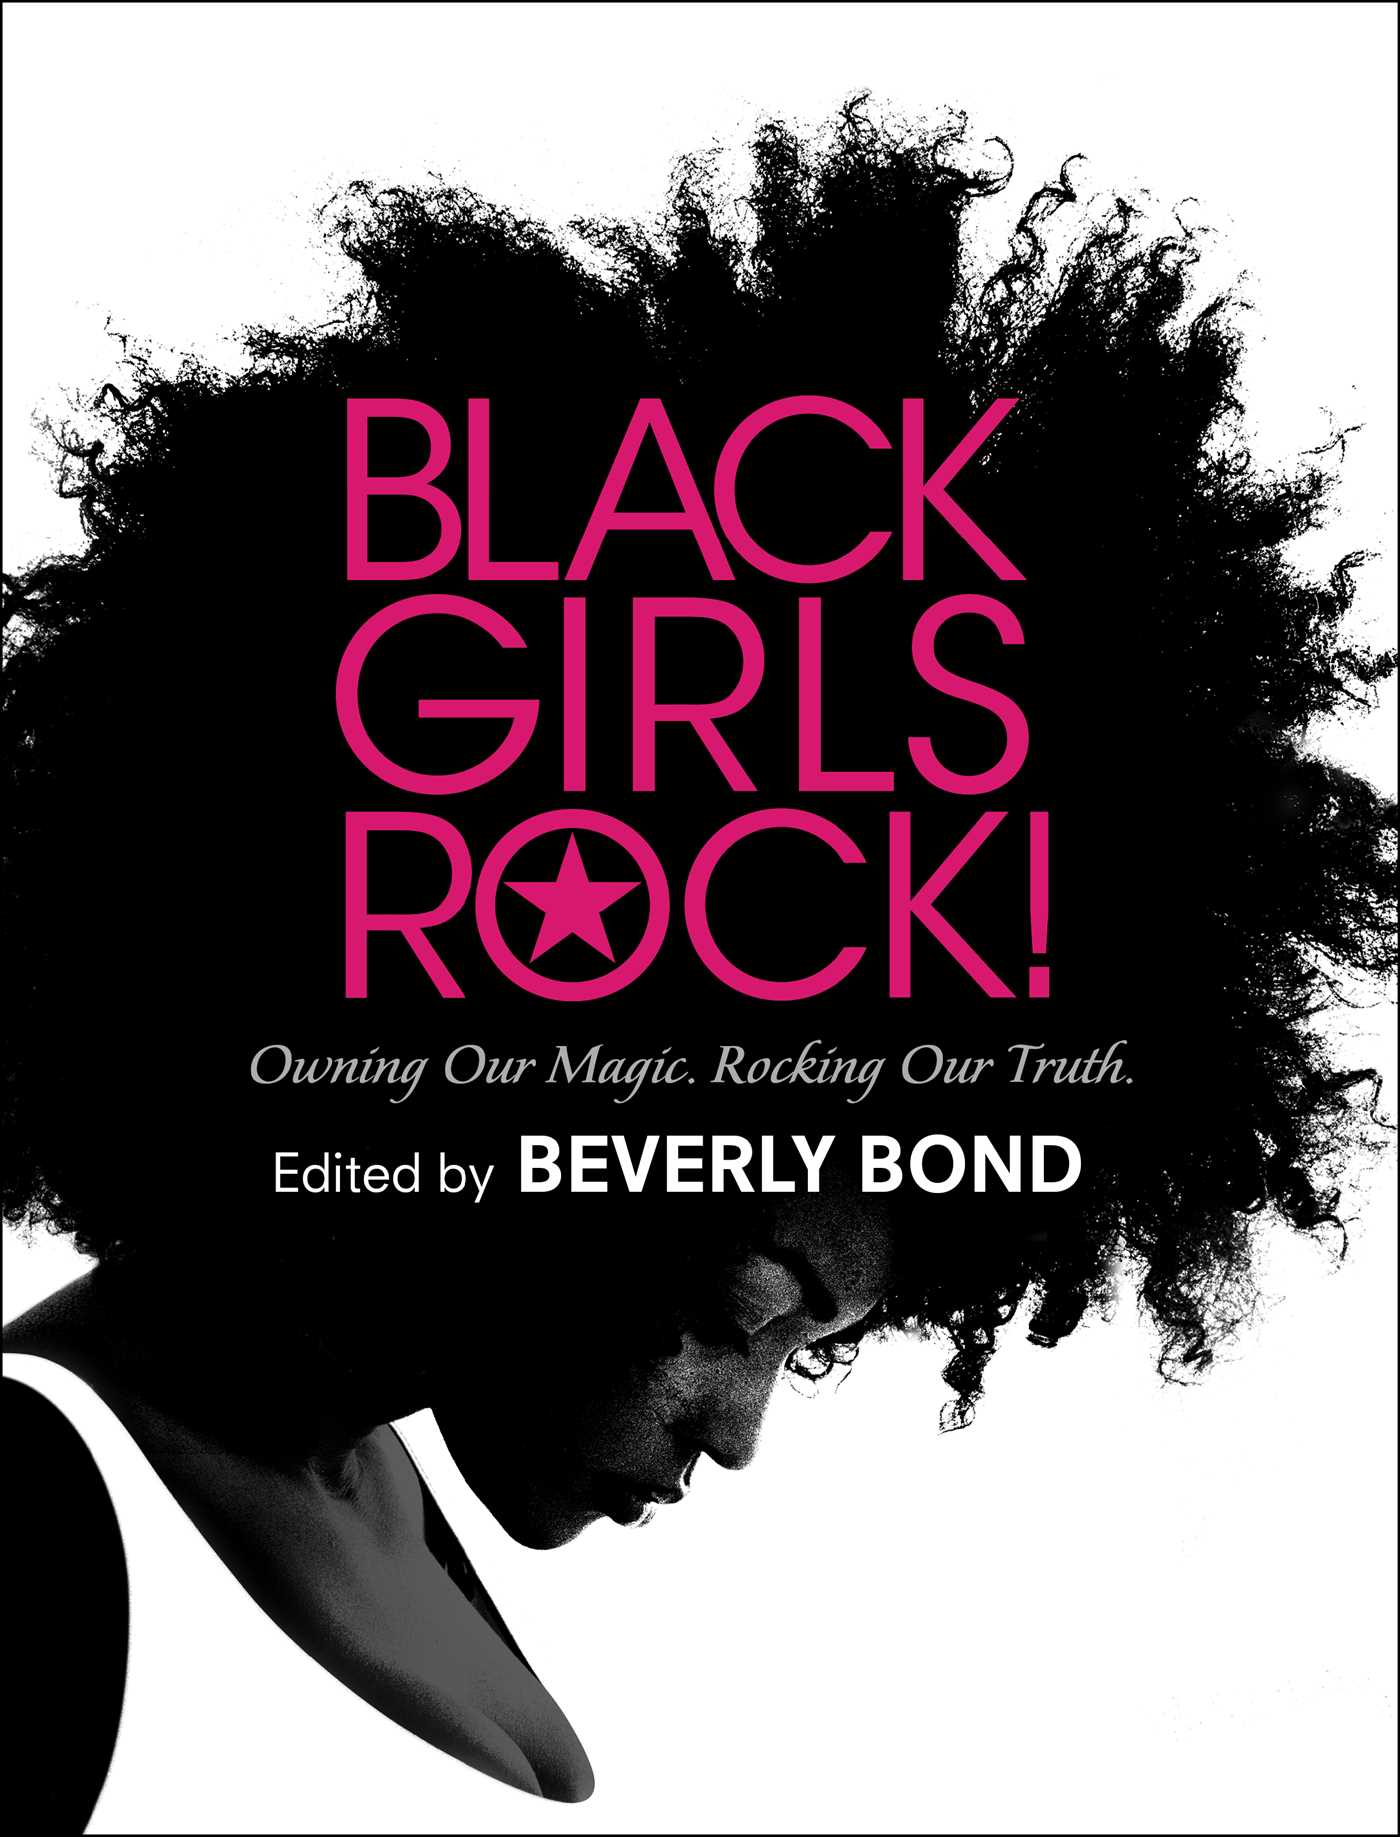 Black Girls Rock - Released through Simon & Schuster